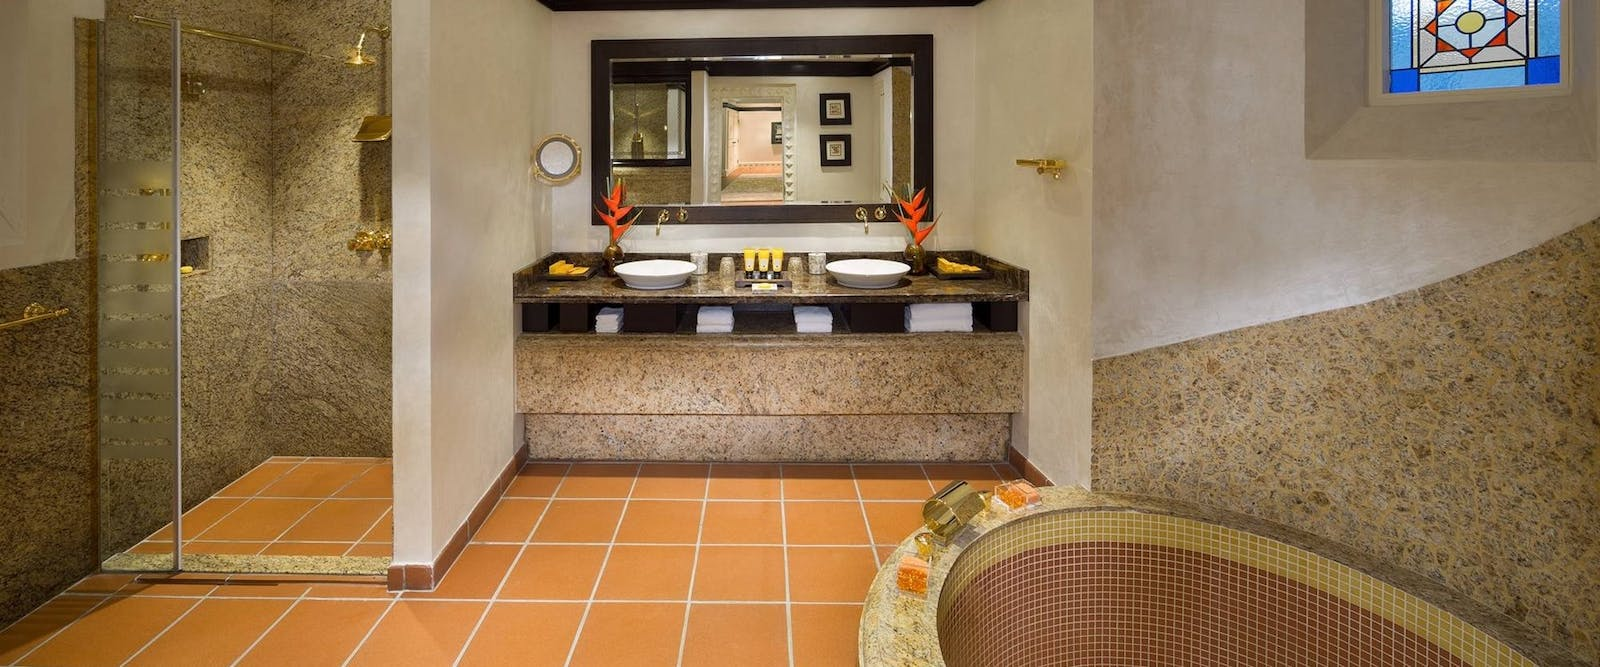 Two Bedroom Royal Villa Bathroom at Beit Al Bahar Villas, Jumeirah Beach Hotel, Dubai